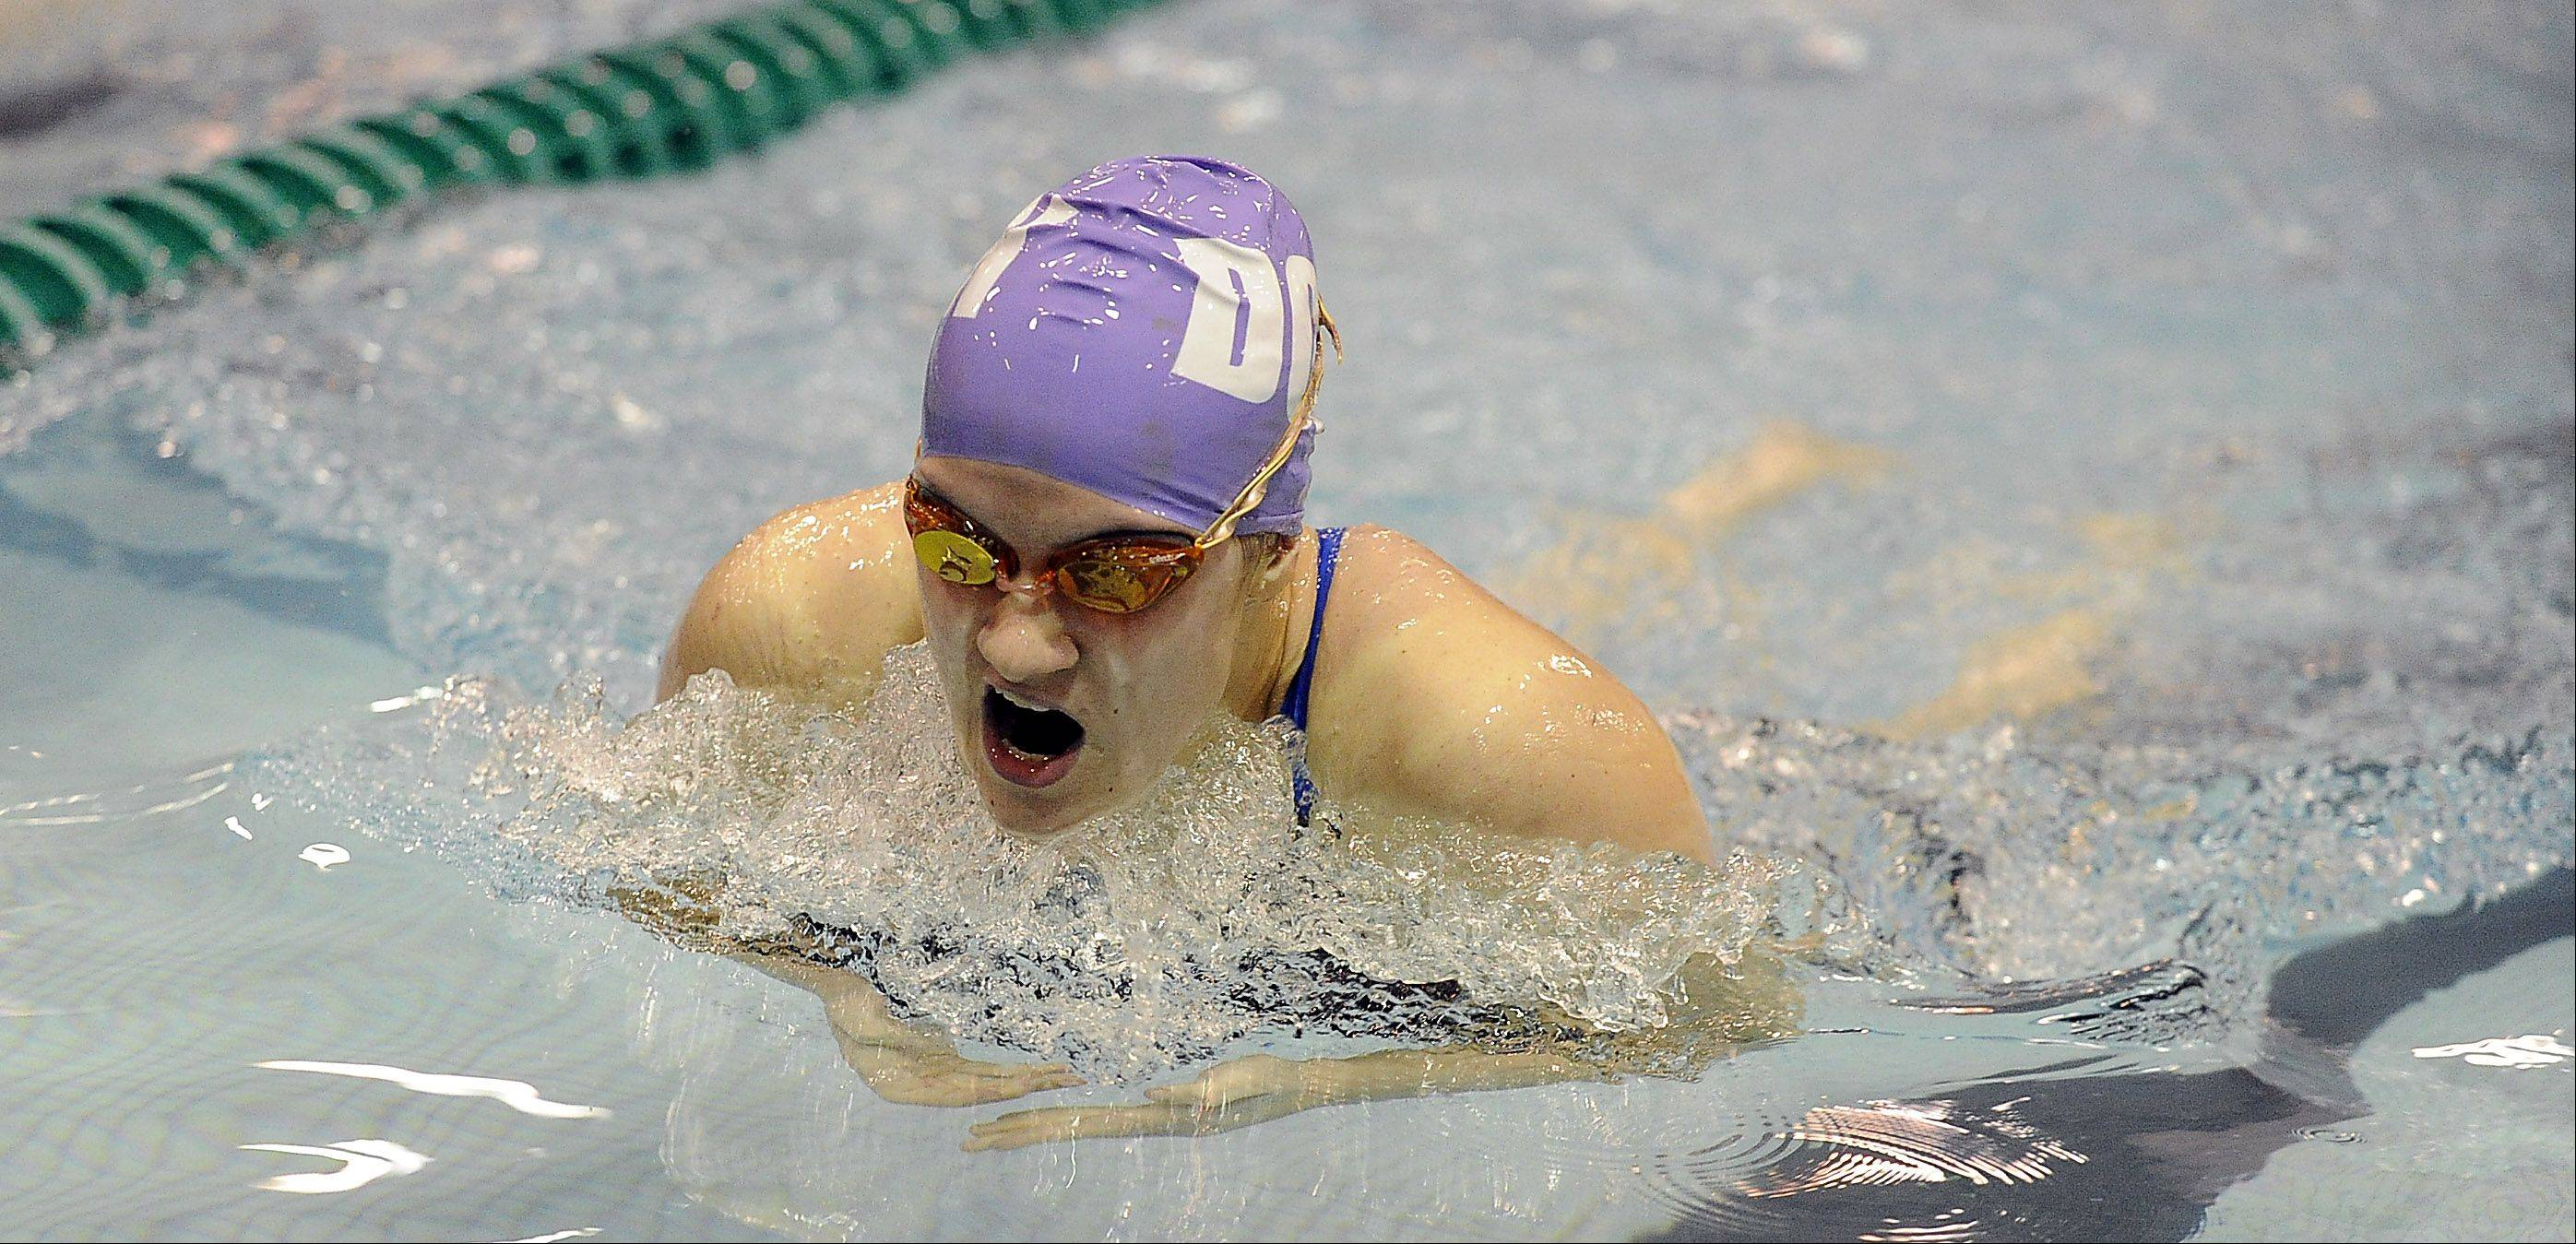 Downers Grove North's Gabriele Serniute plows through the water in the 200-yd. individual medley at the girls state finals prelims at New Trier High School on Friday.